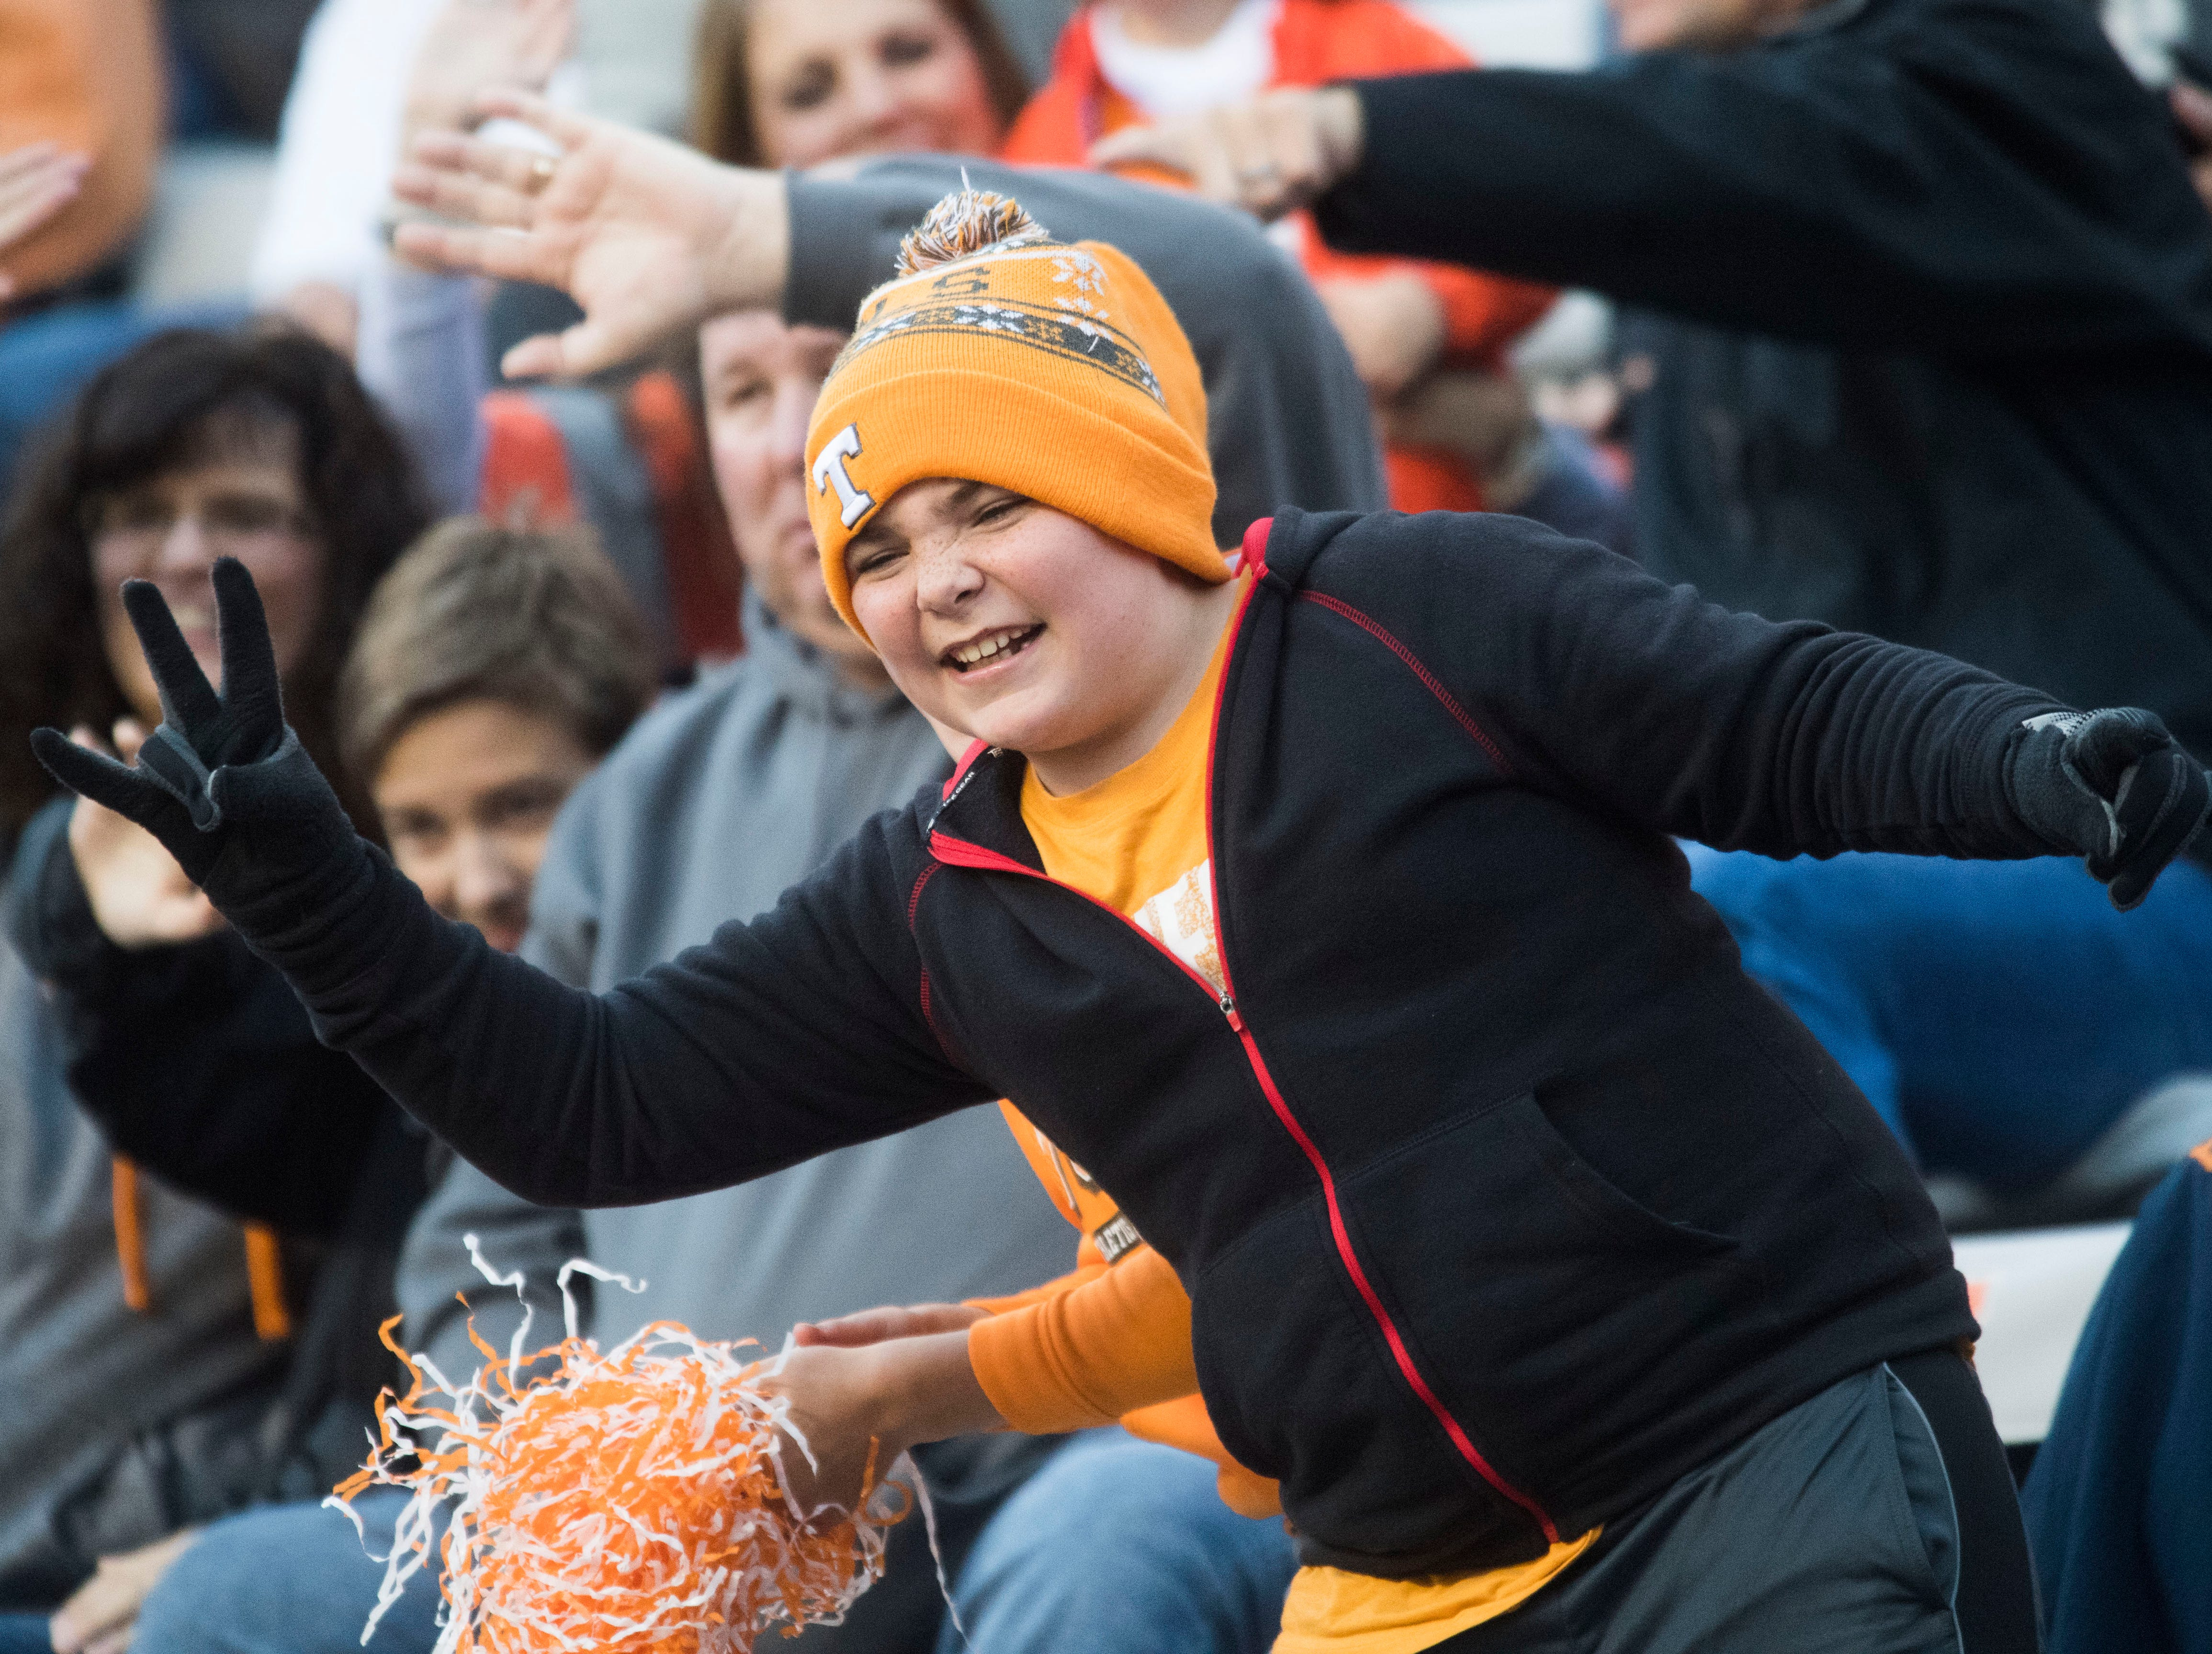 A young Tennessee fan celebrates during the homecoming game between Tennessee and Charlotte outside of Neyland Stadium Saturday, Nov. 3, 2018.